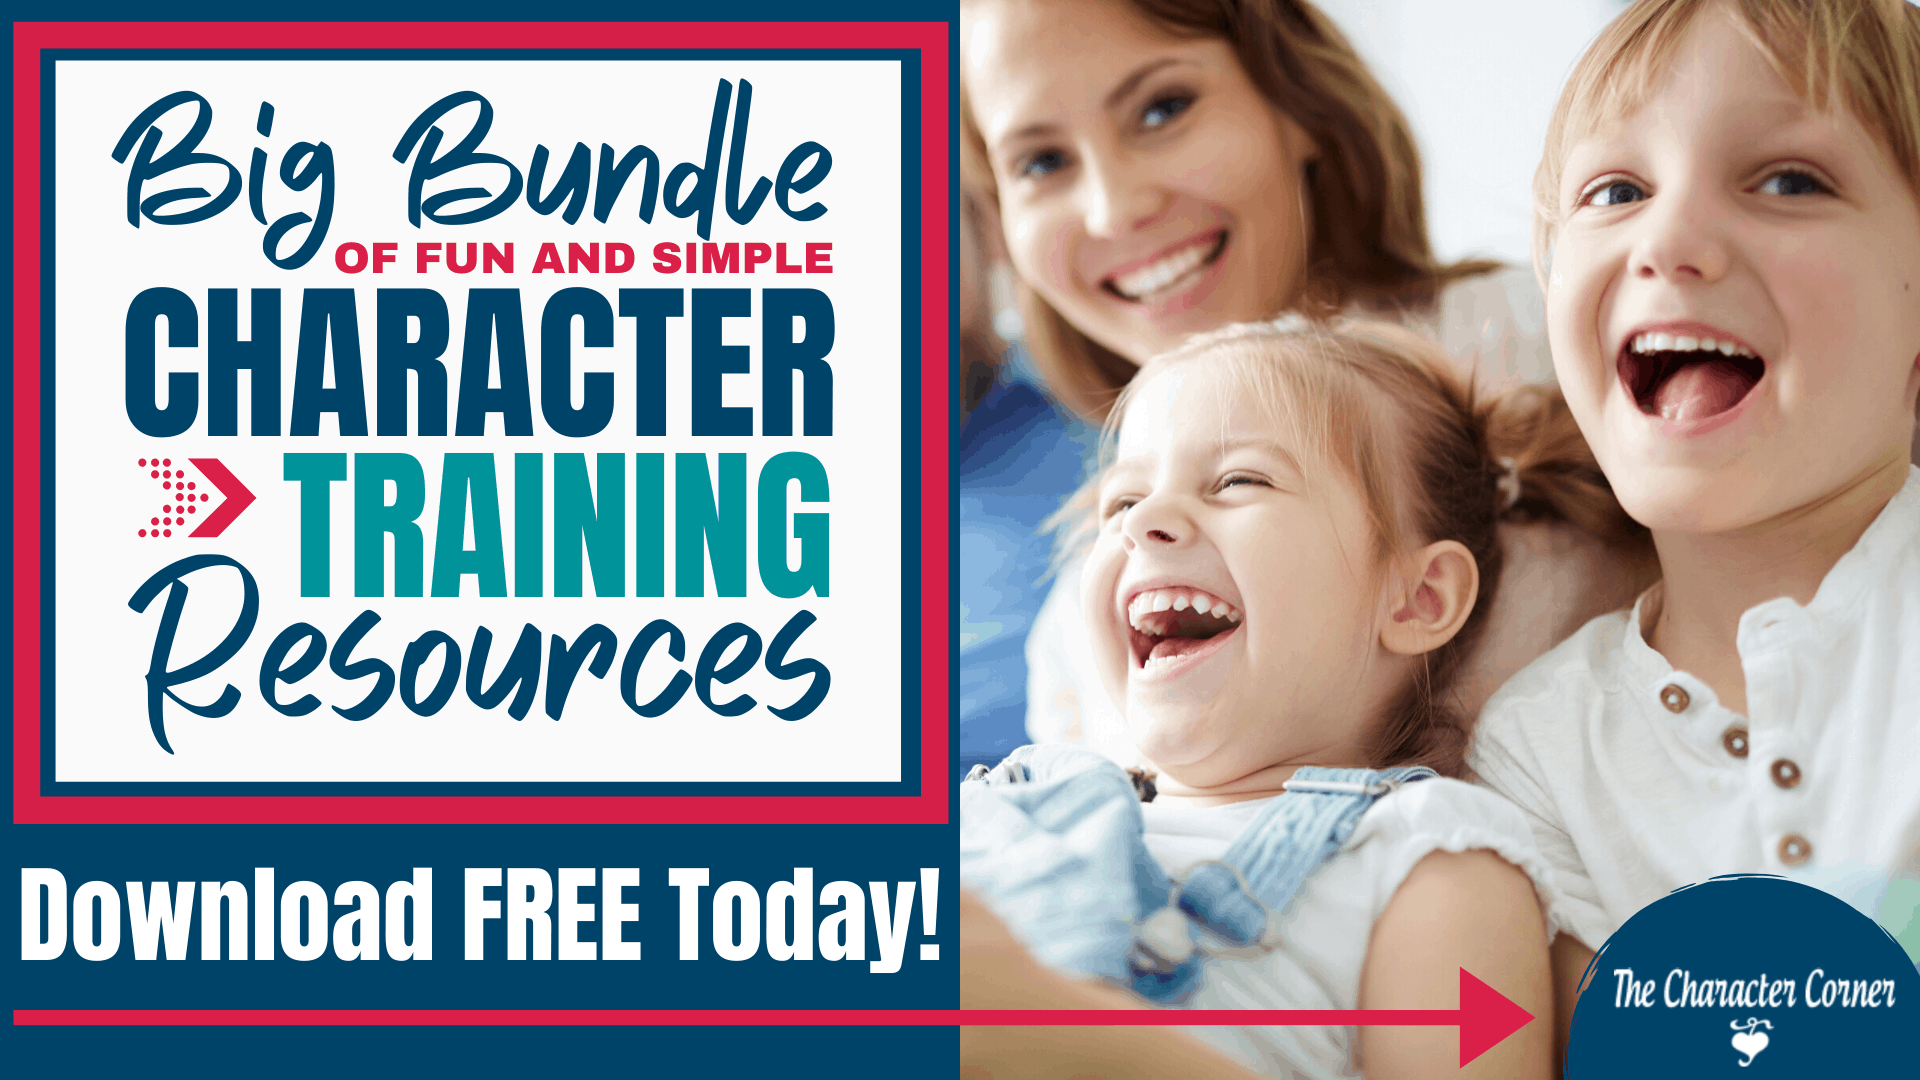 Big Bundle of Fun and Simple Character Training Resources